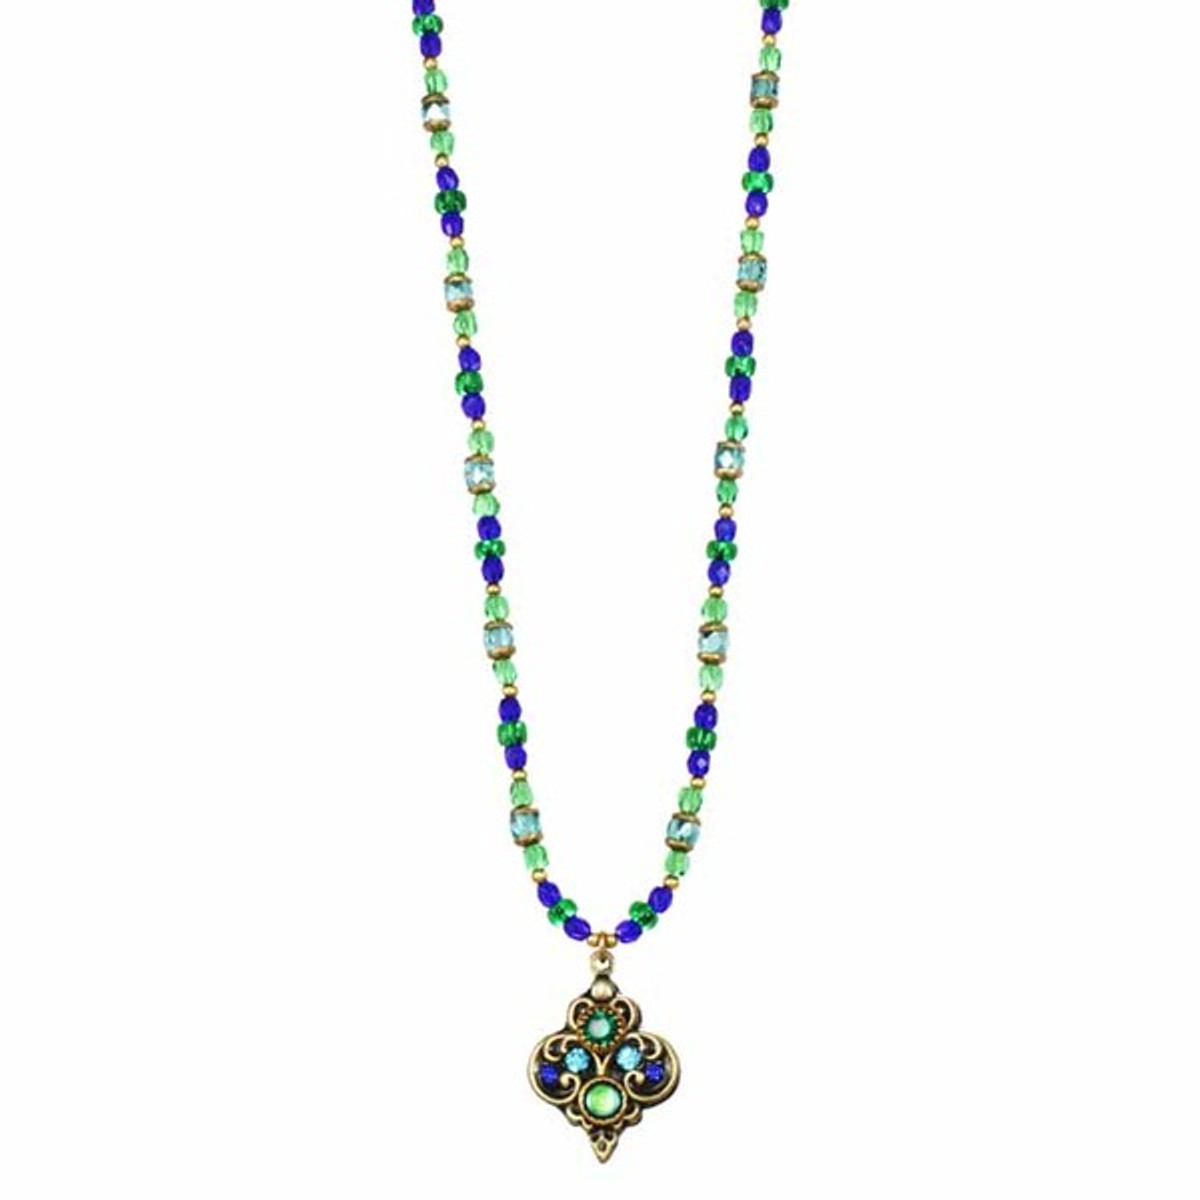 Peacock Necklace By Michal Golan Jewelry